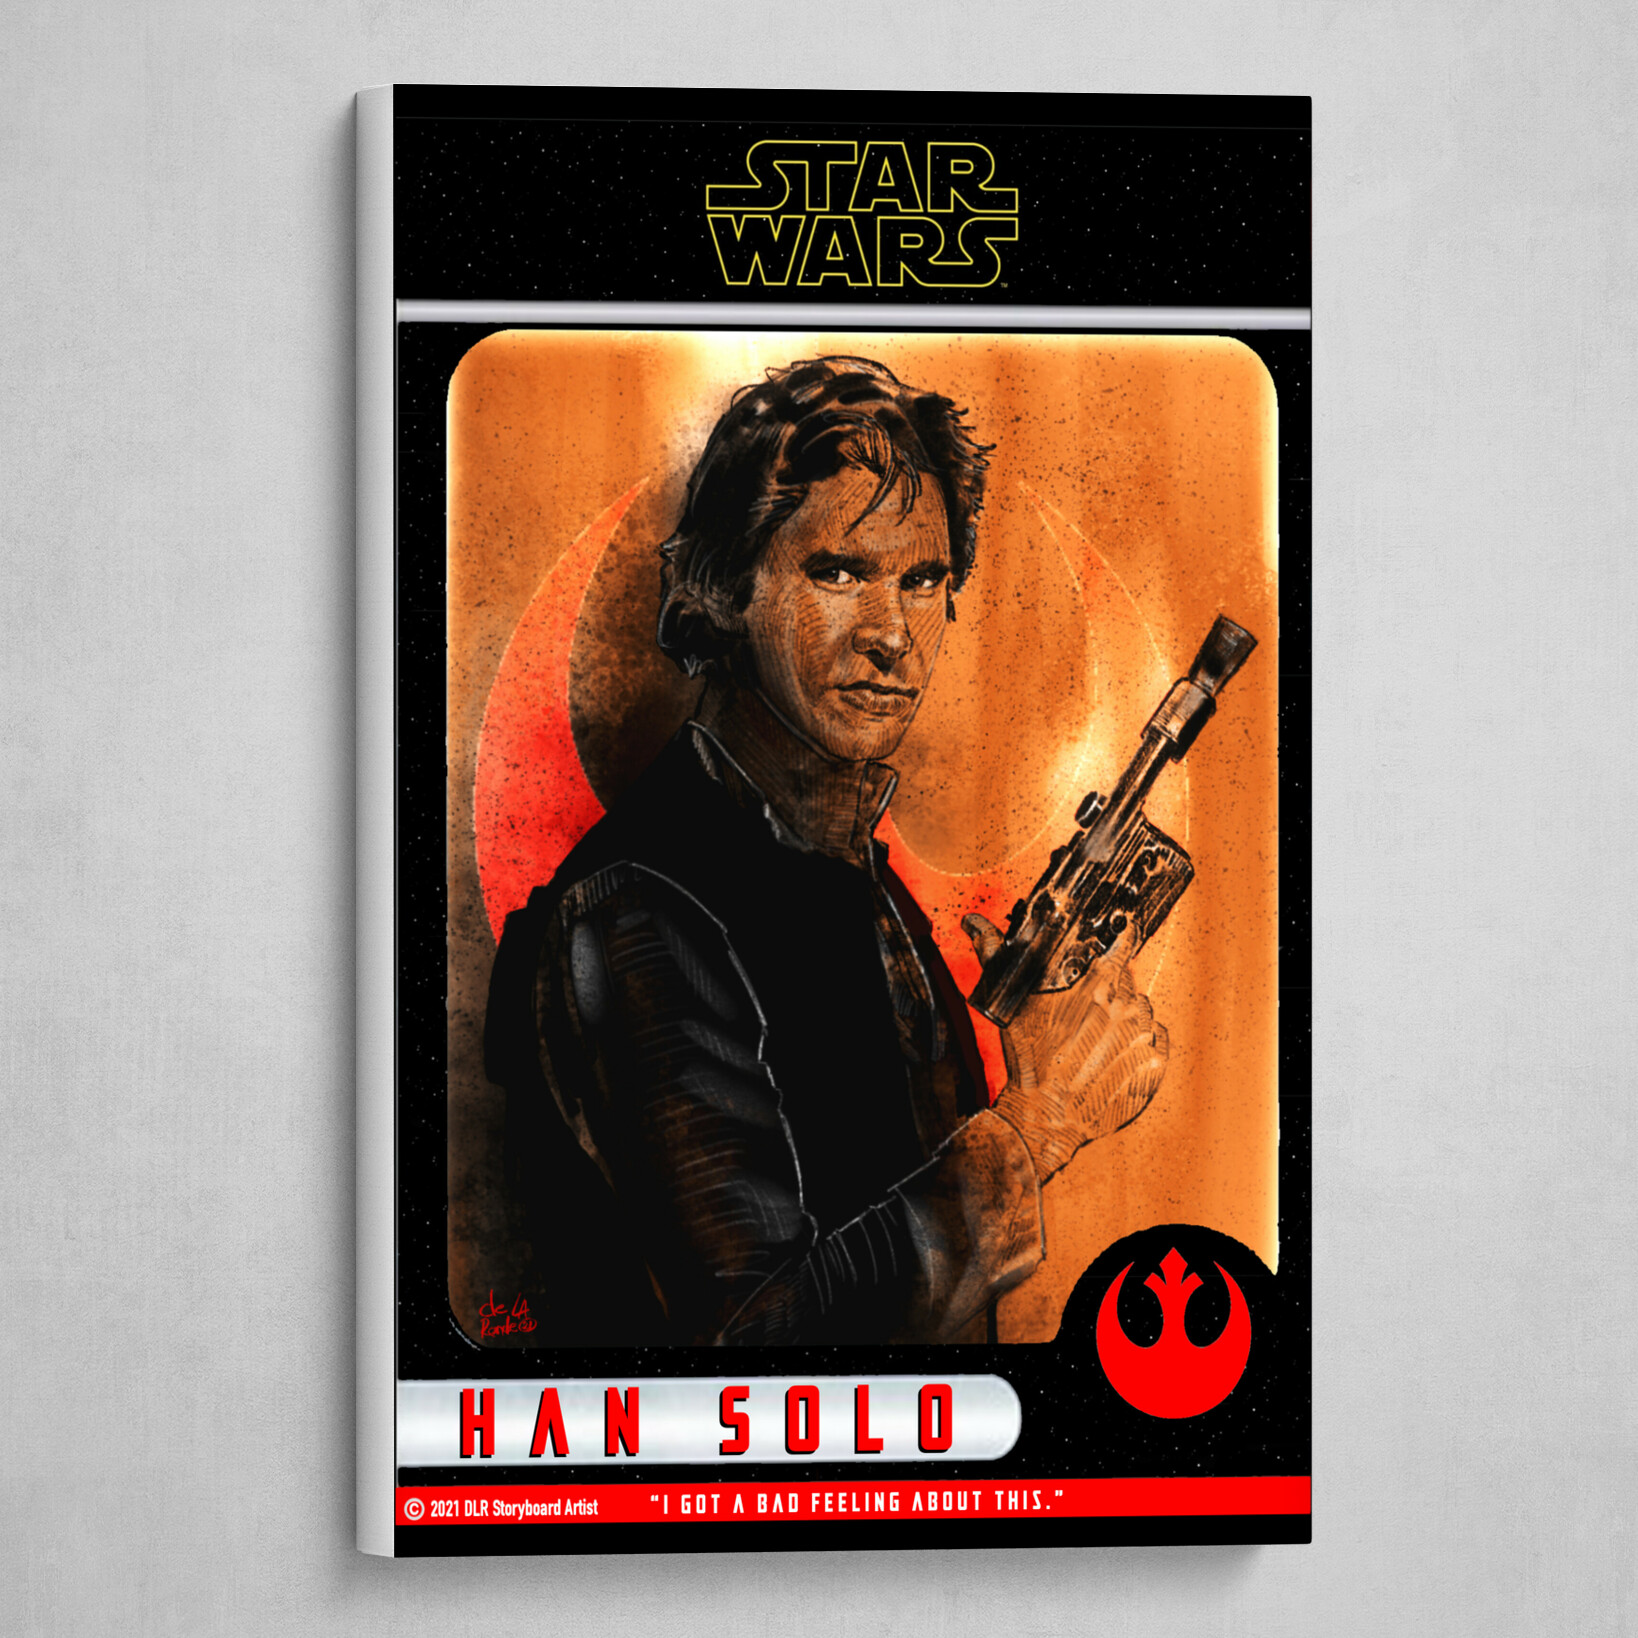 Han Solo Poster (Trading Card Style)